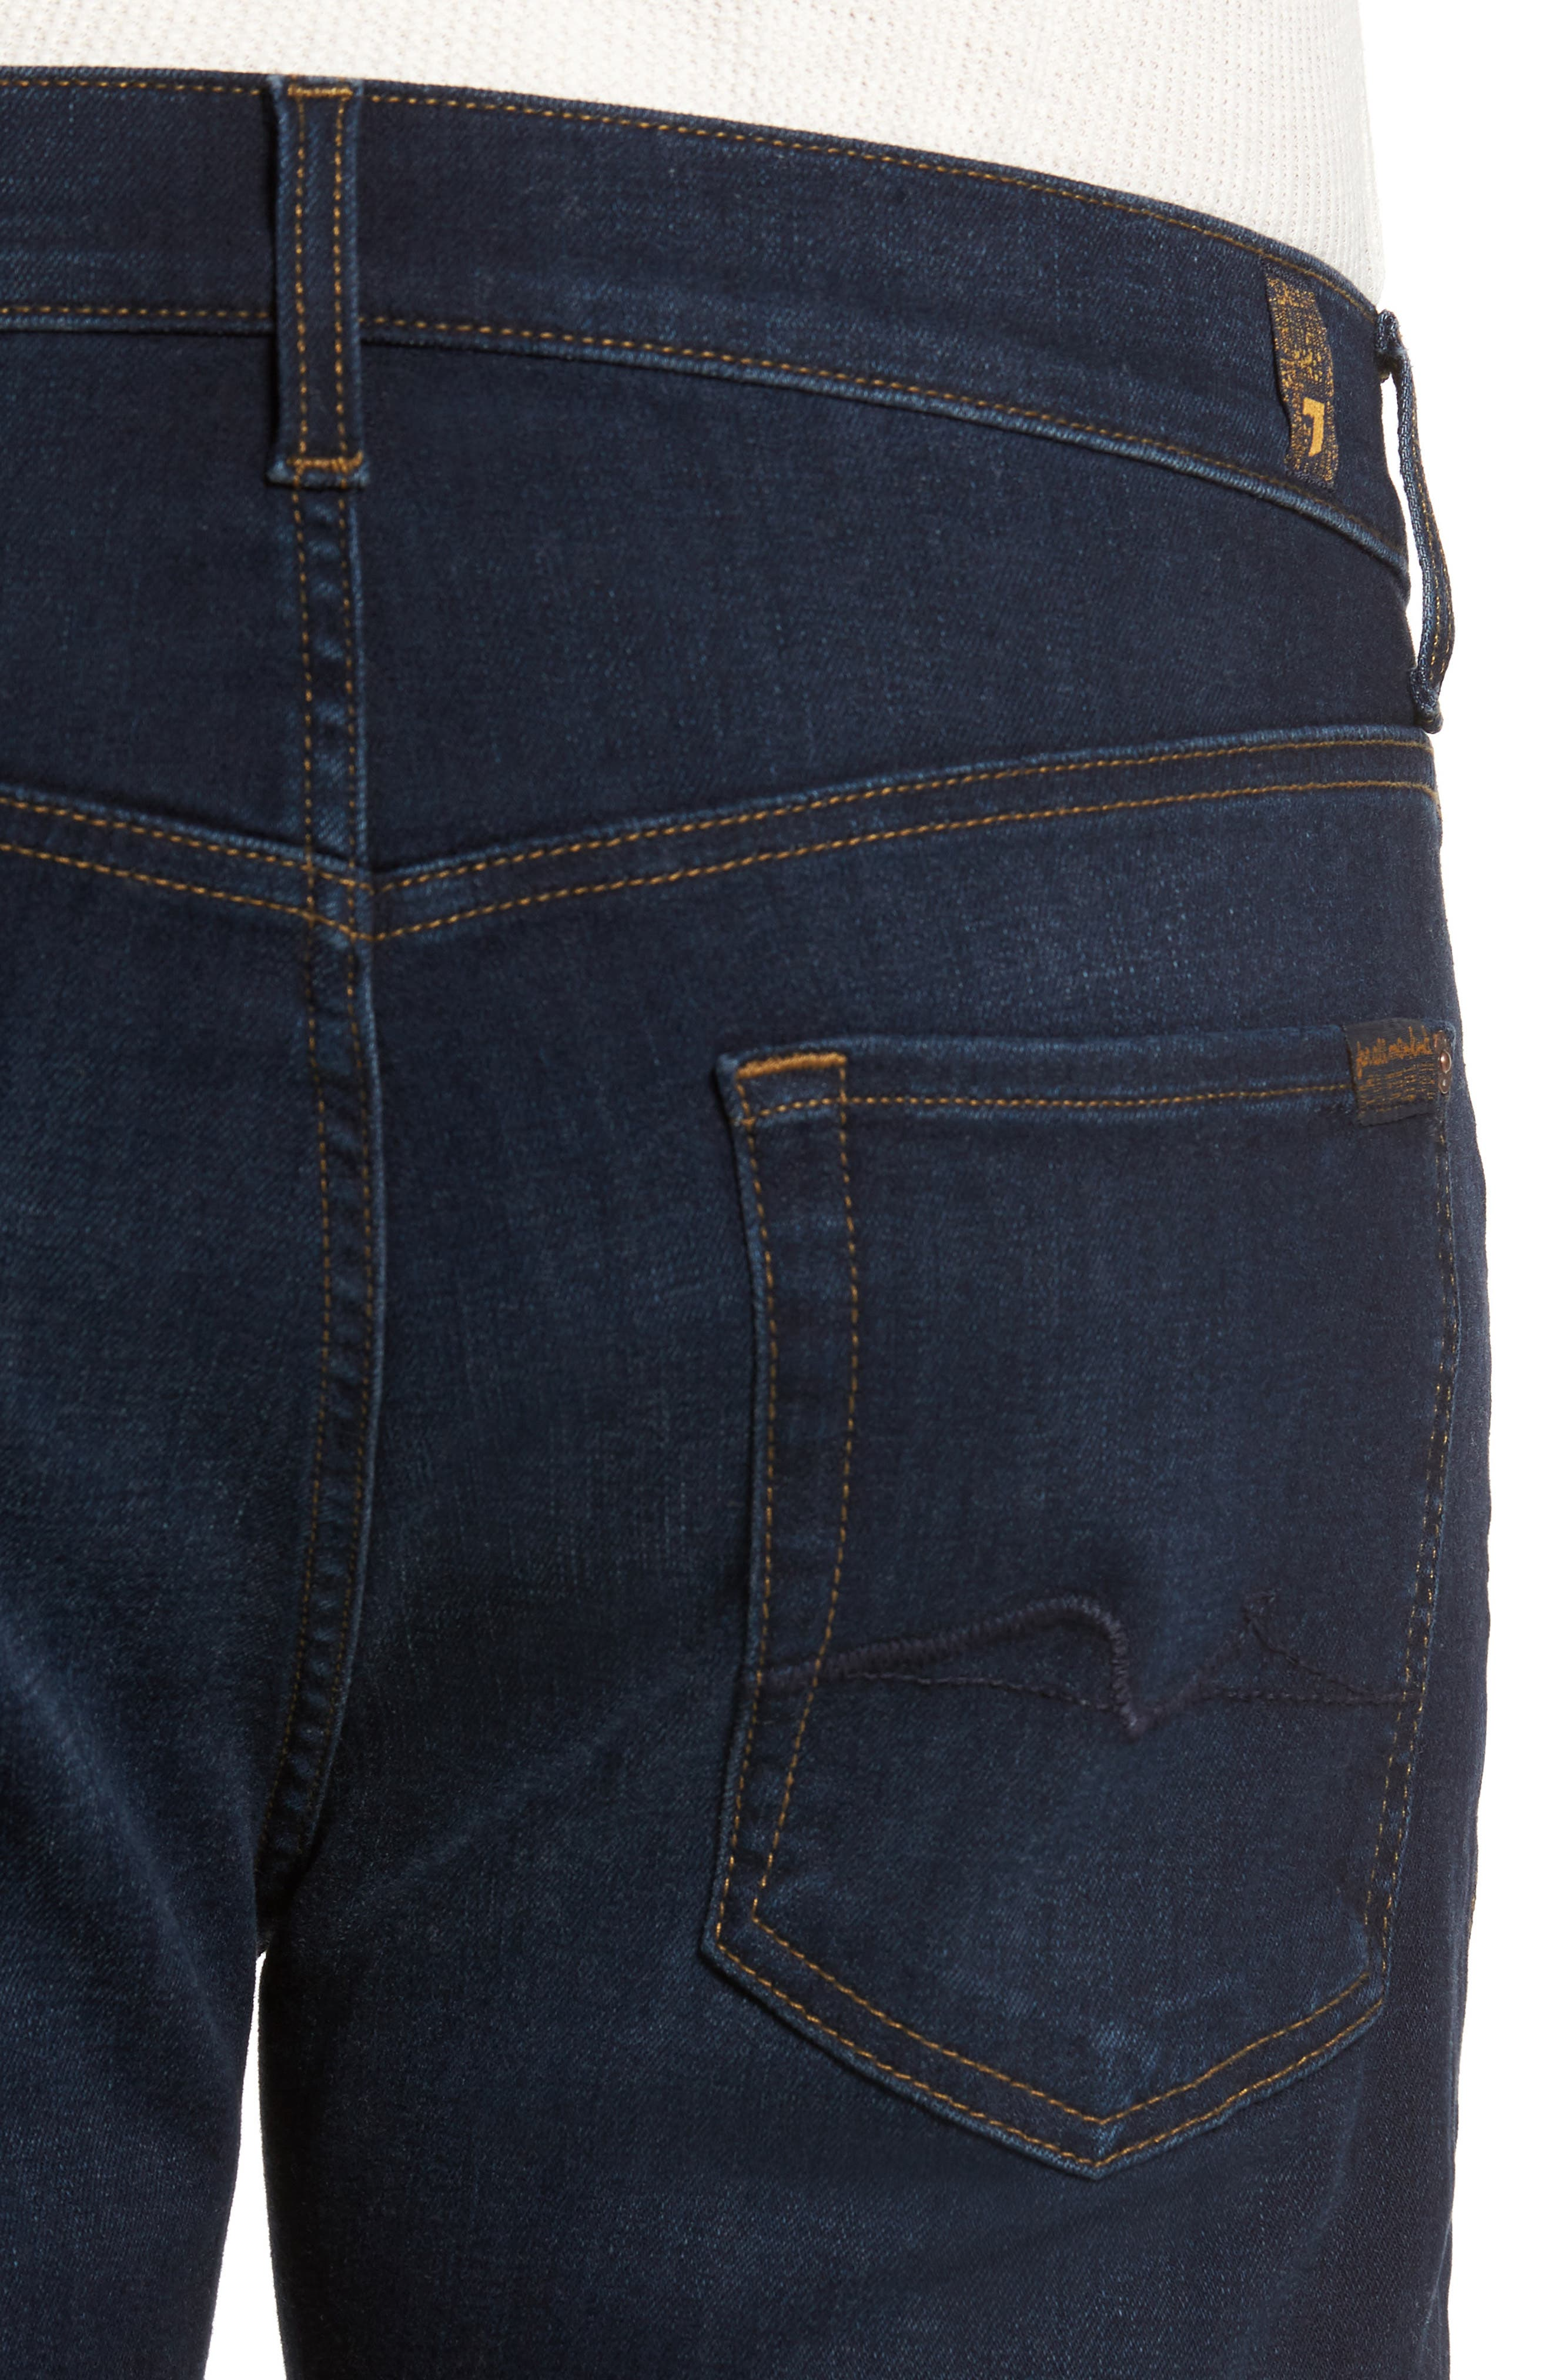 Standard Straight Fit Jeans,                             Alternate thumbnail 4, color,                             Albany